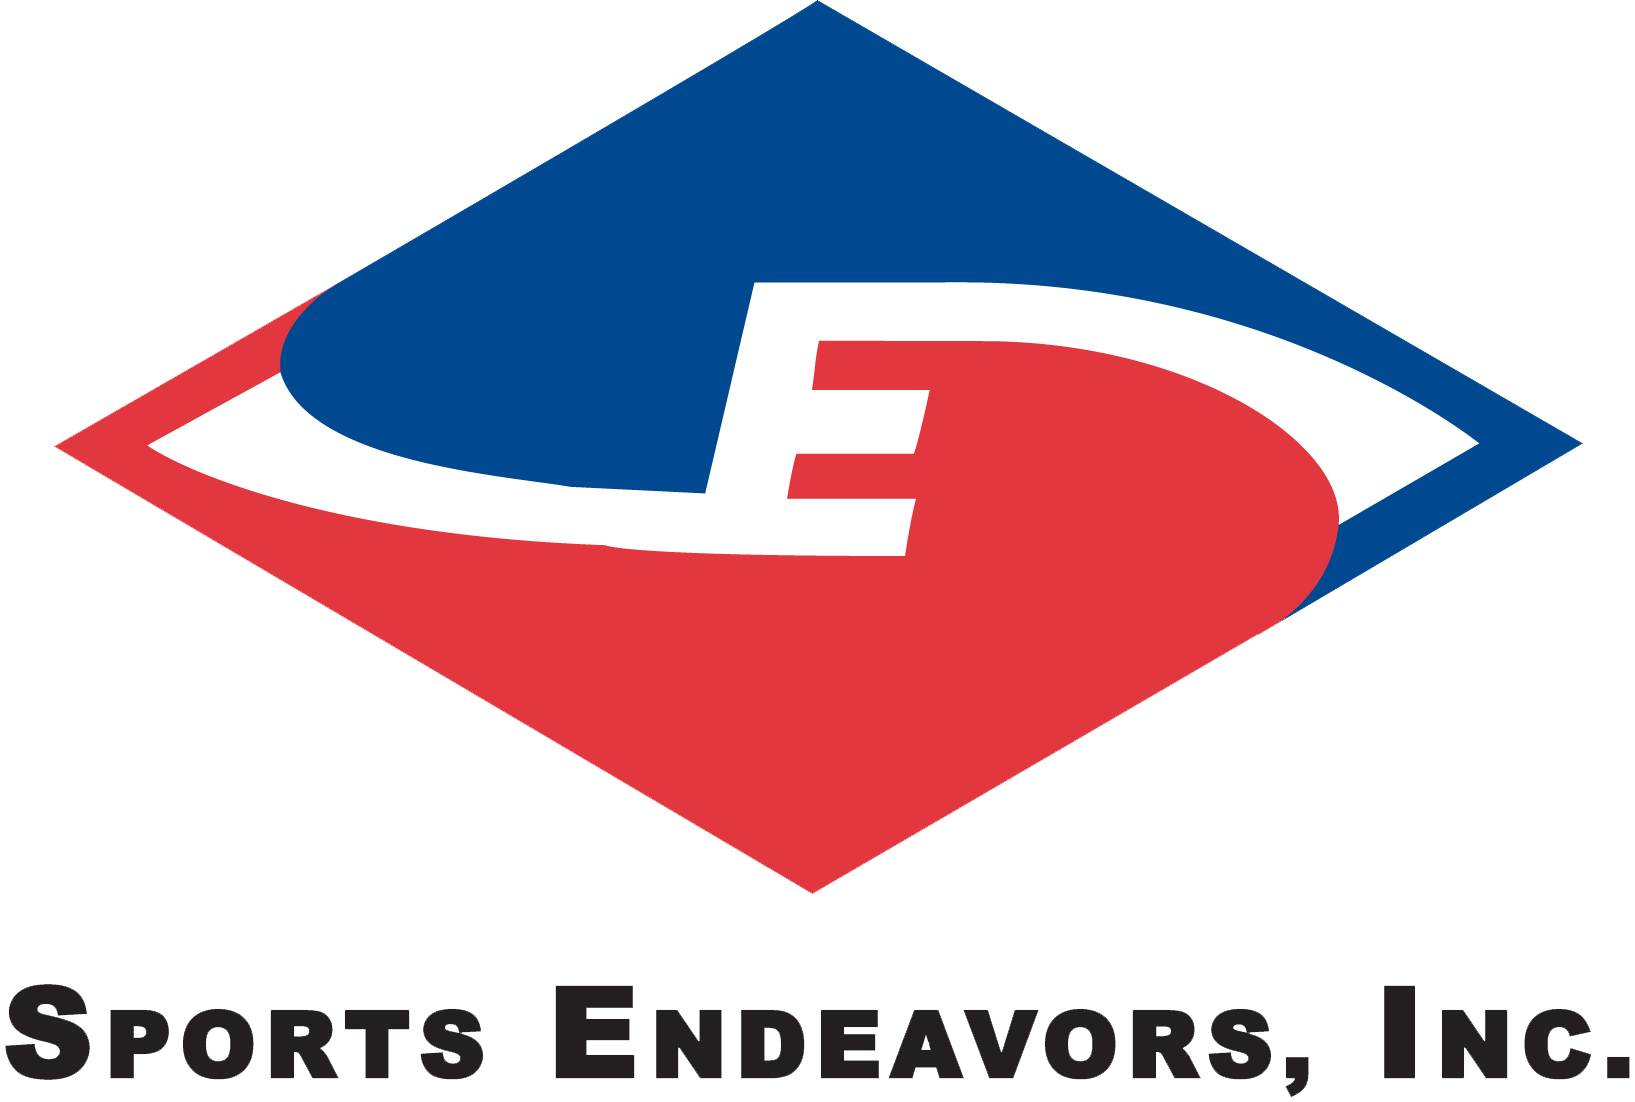 Sports Endeavoes_300dpi